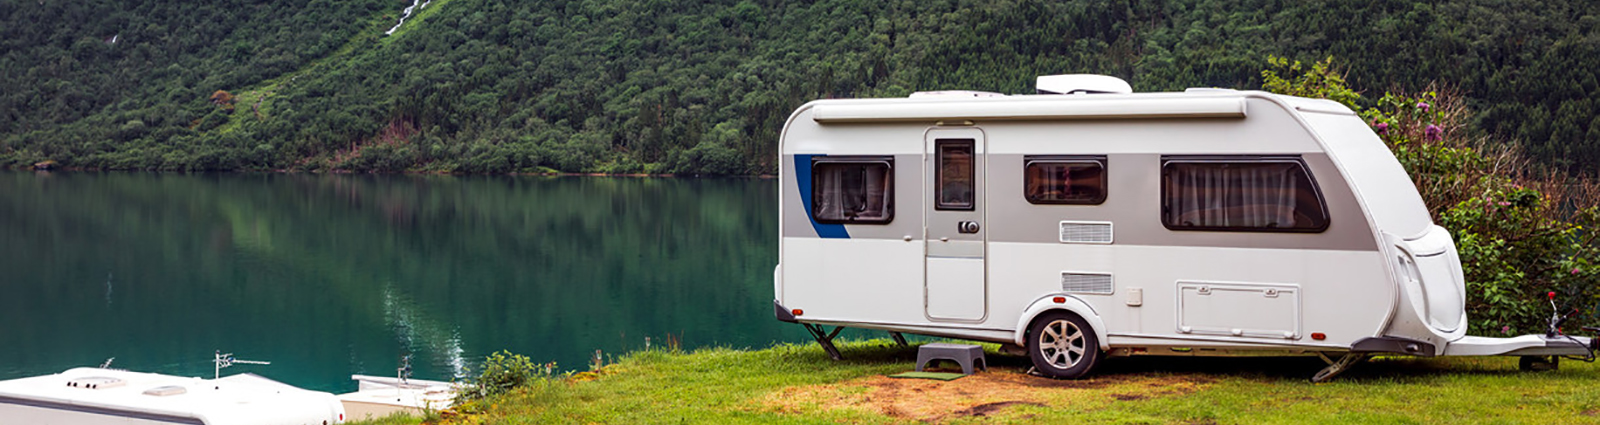 Camper van outside by a lake